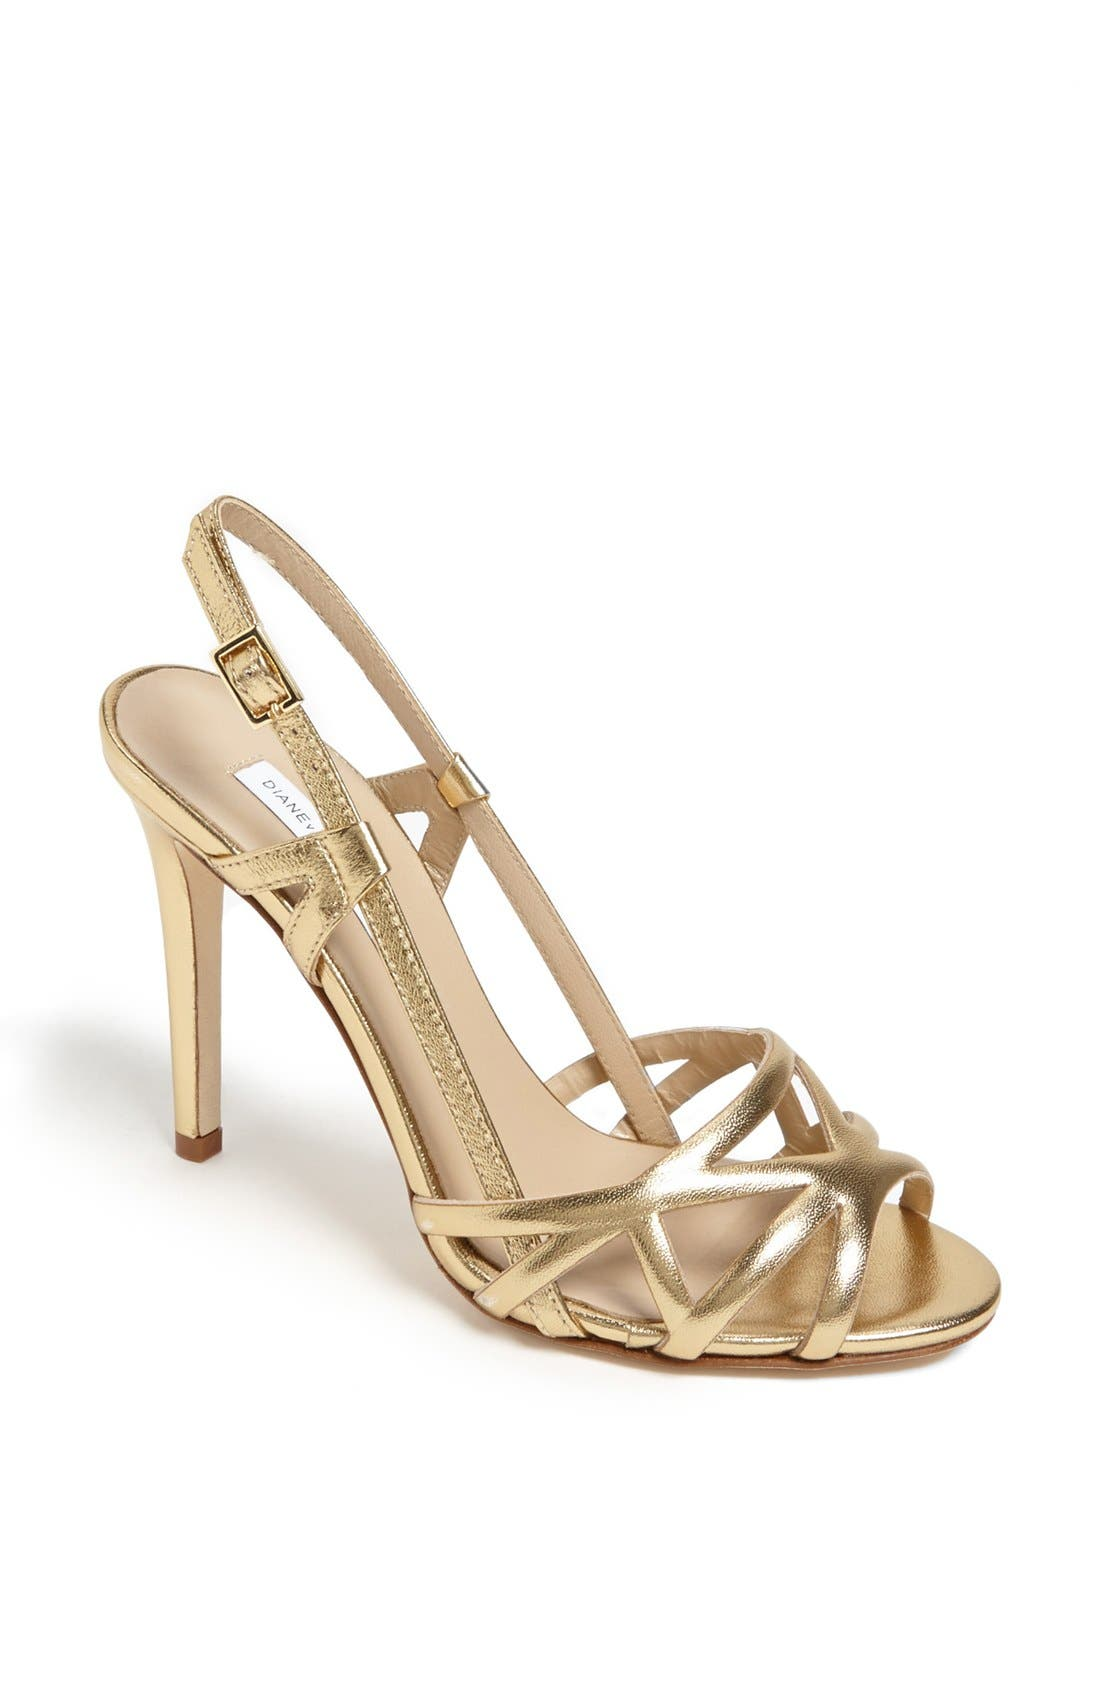 Alternate Image 1 Selected - Diane von Furstenberg 'Upton' Metallic Leather Sandal